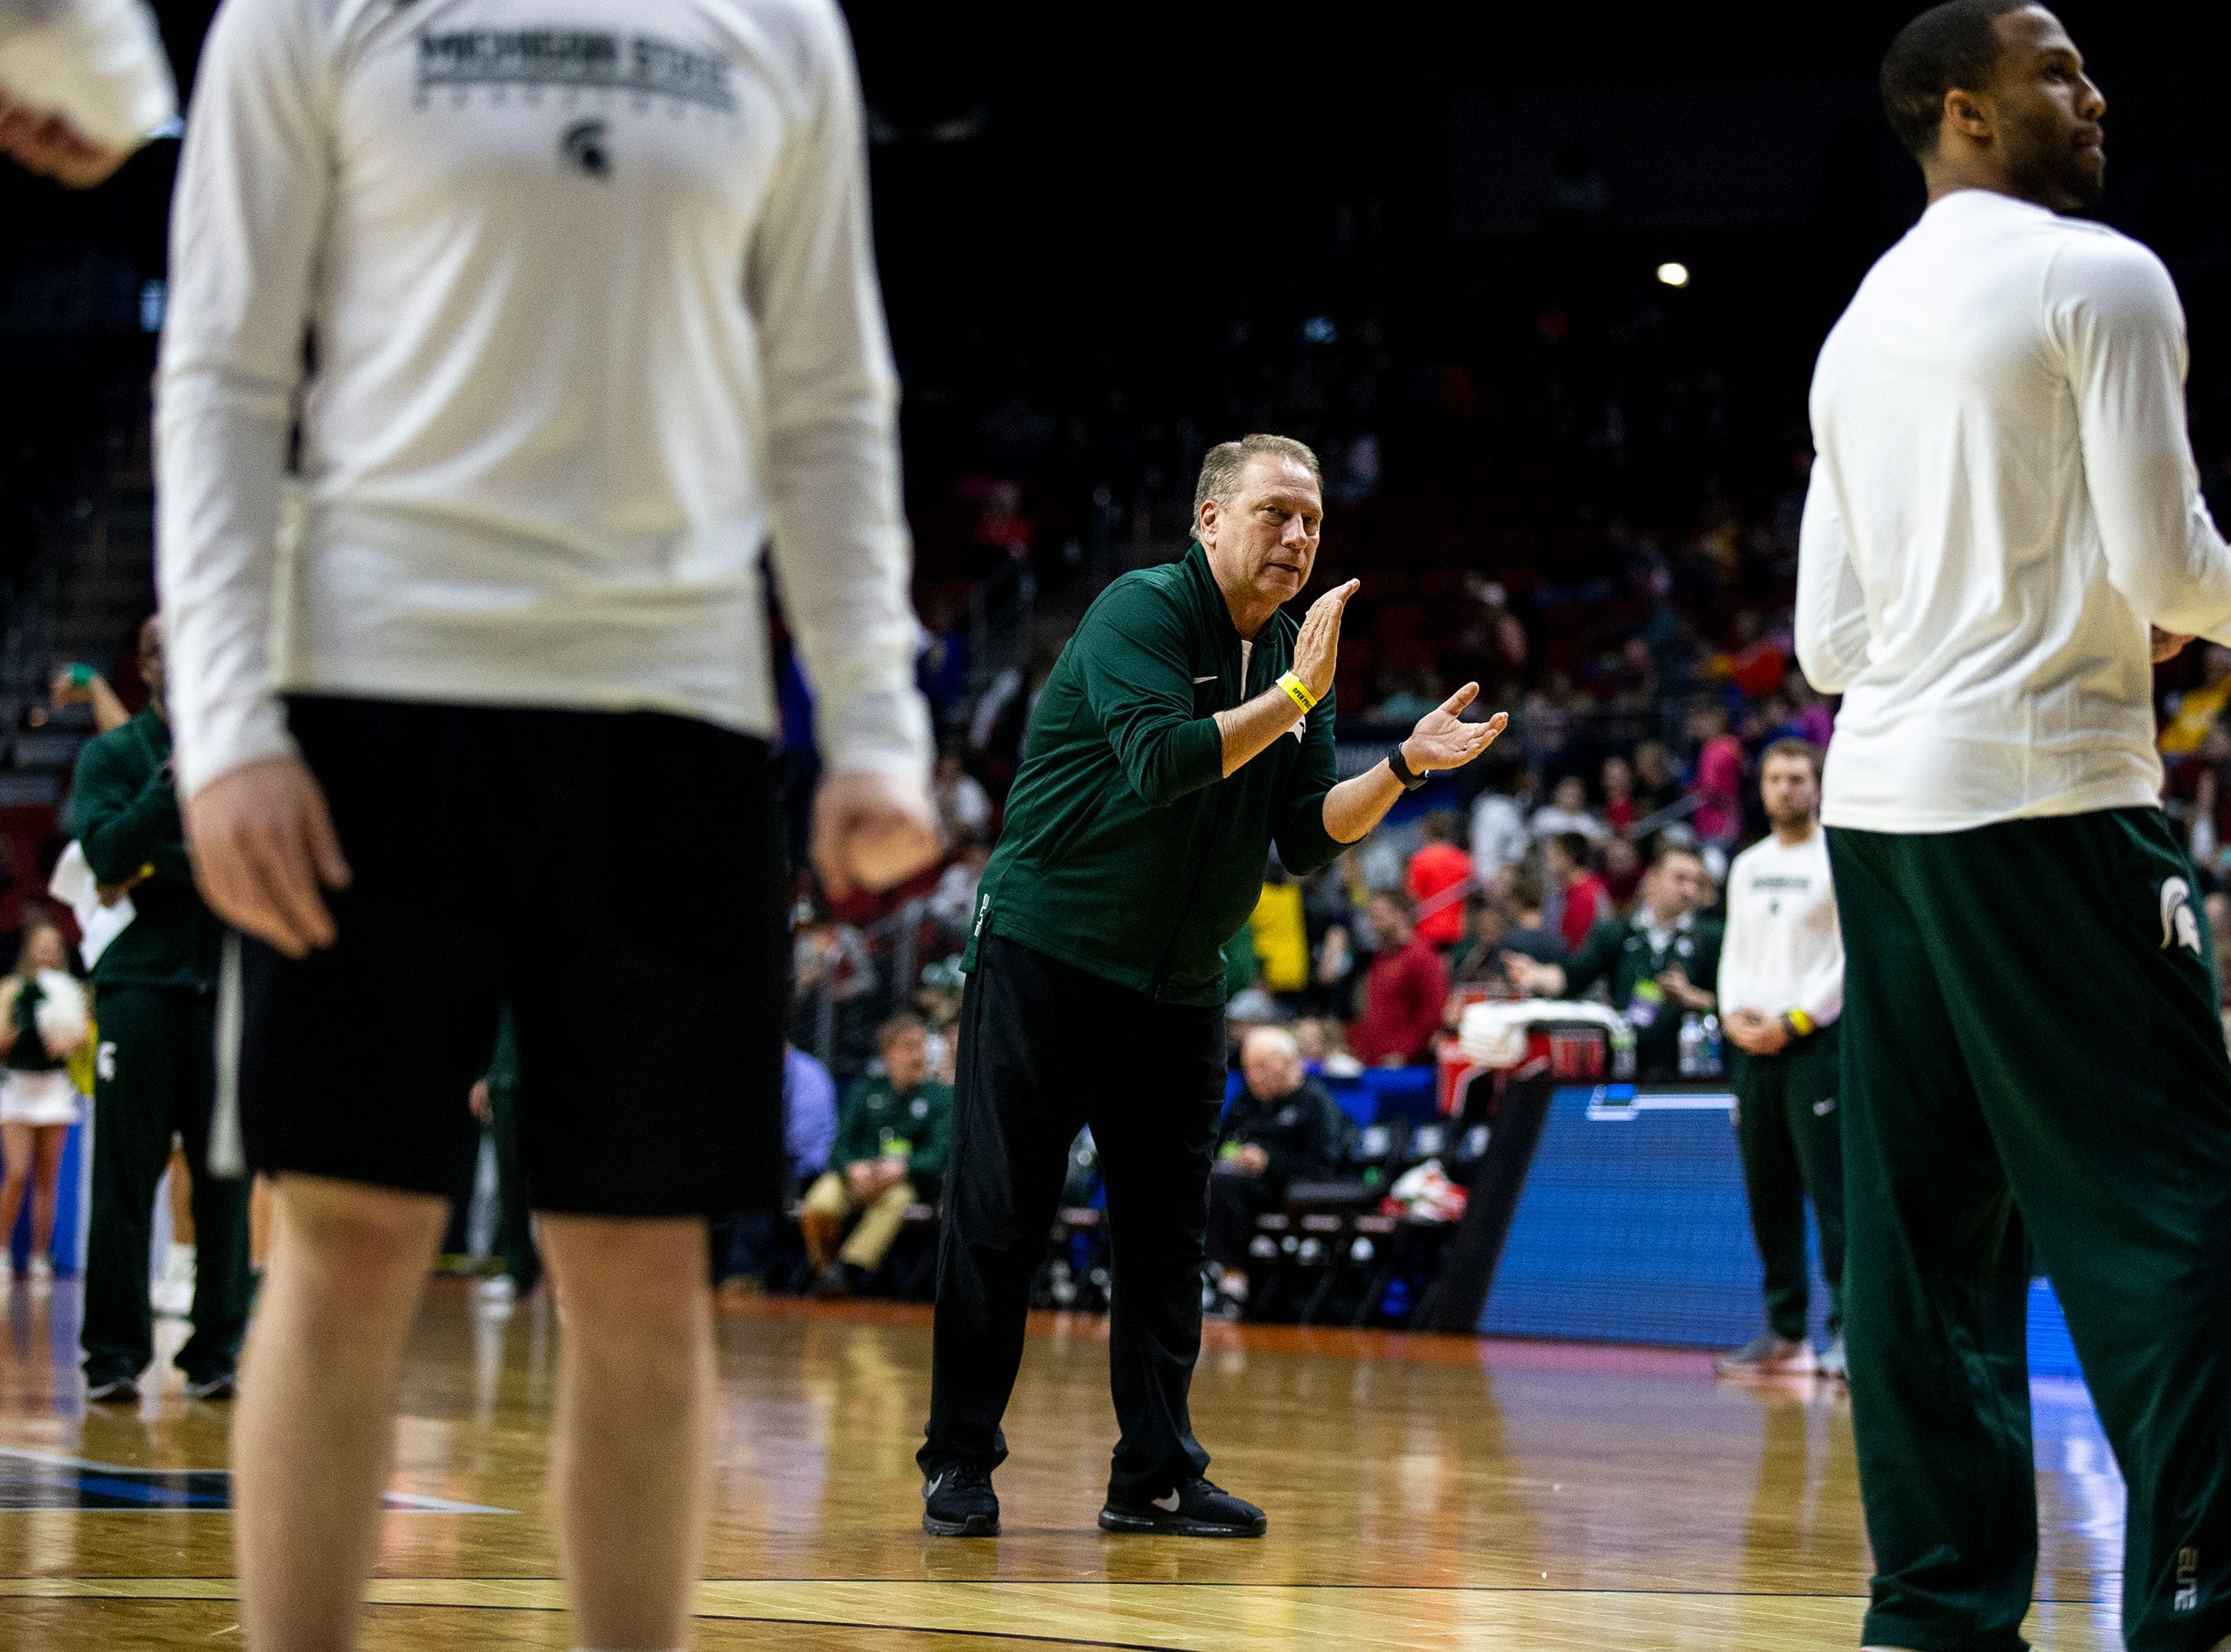 Michigan State Head Coach Tom Izzo encourages the team during Michigan State's open practice before the first round of the NCAA Men's Basketball Tournament on Wednesday, March 20, 2019, at Wells Fargo Arena in Des Moines, Iowa.